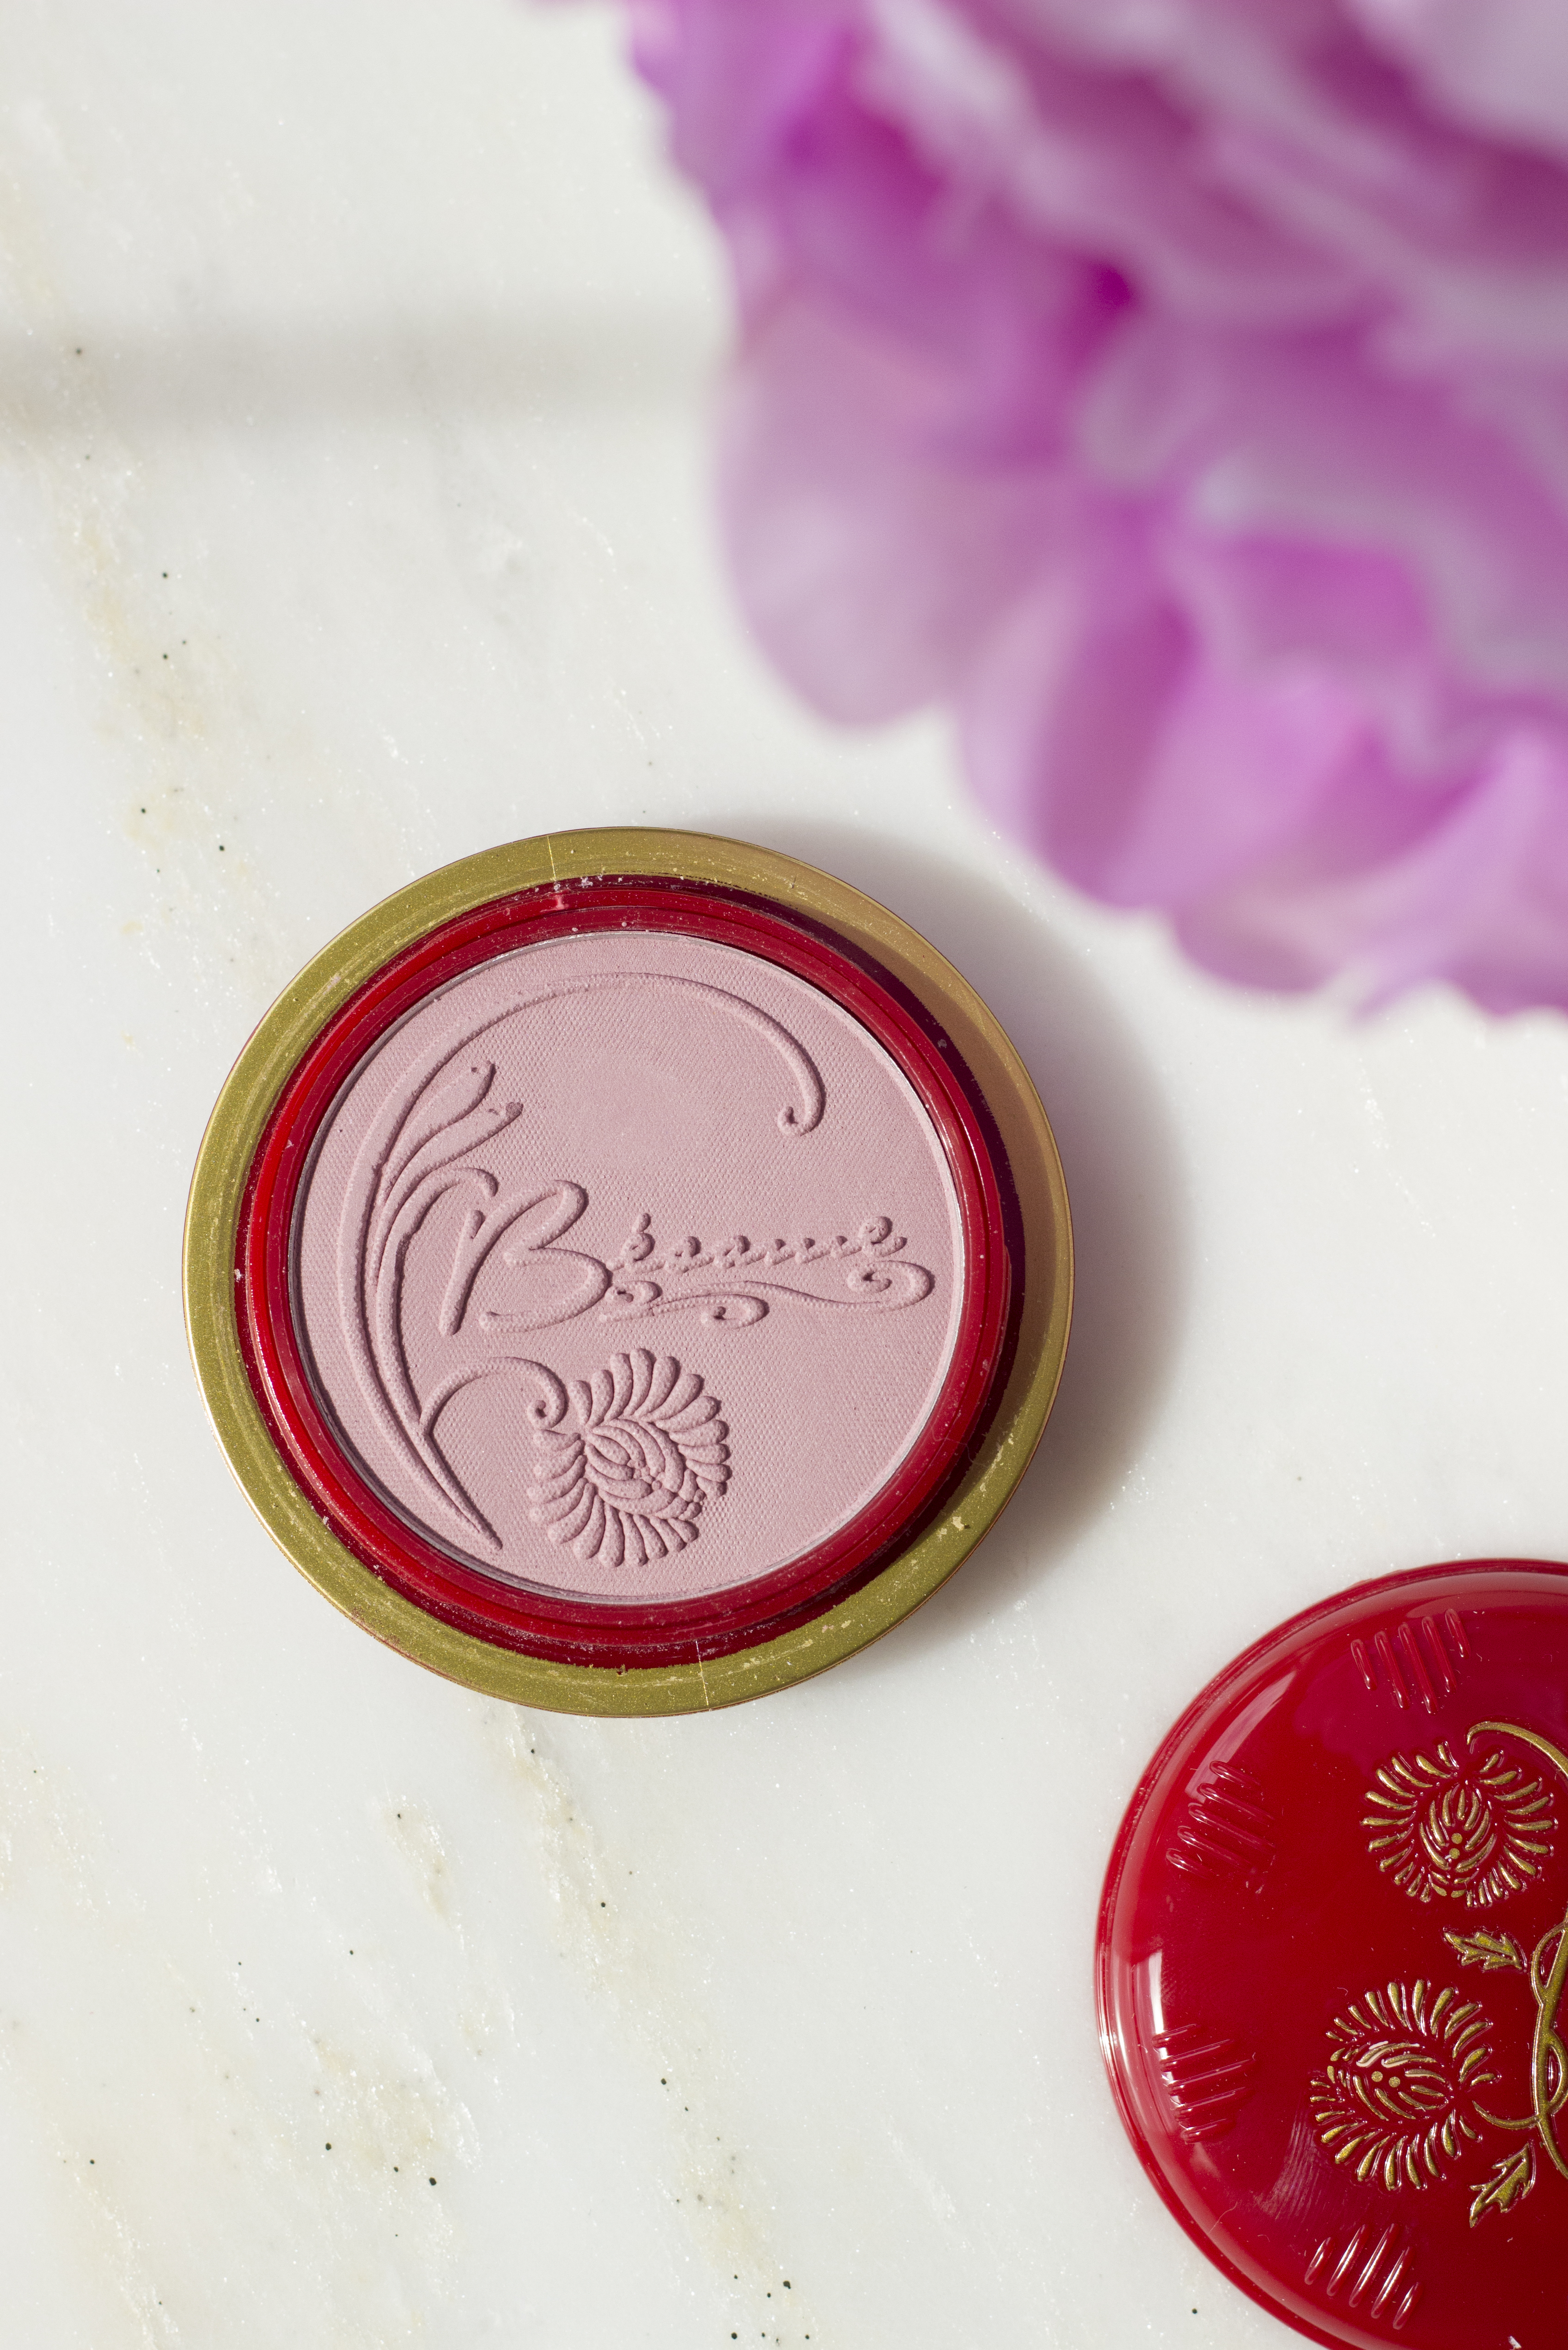 Besame Delicate Rouge in Raspberry